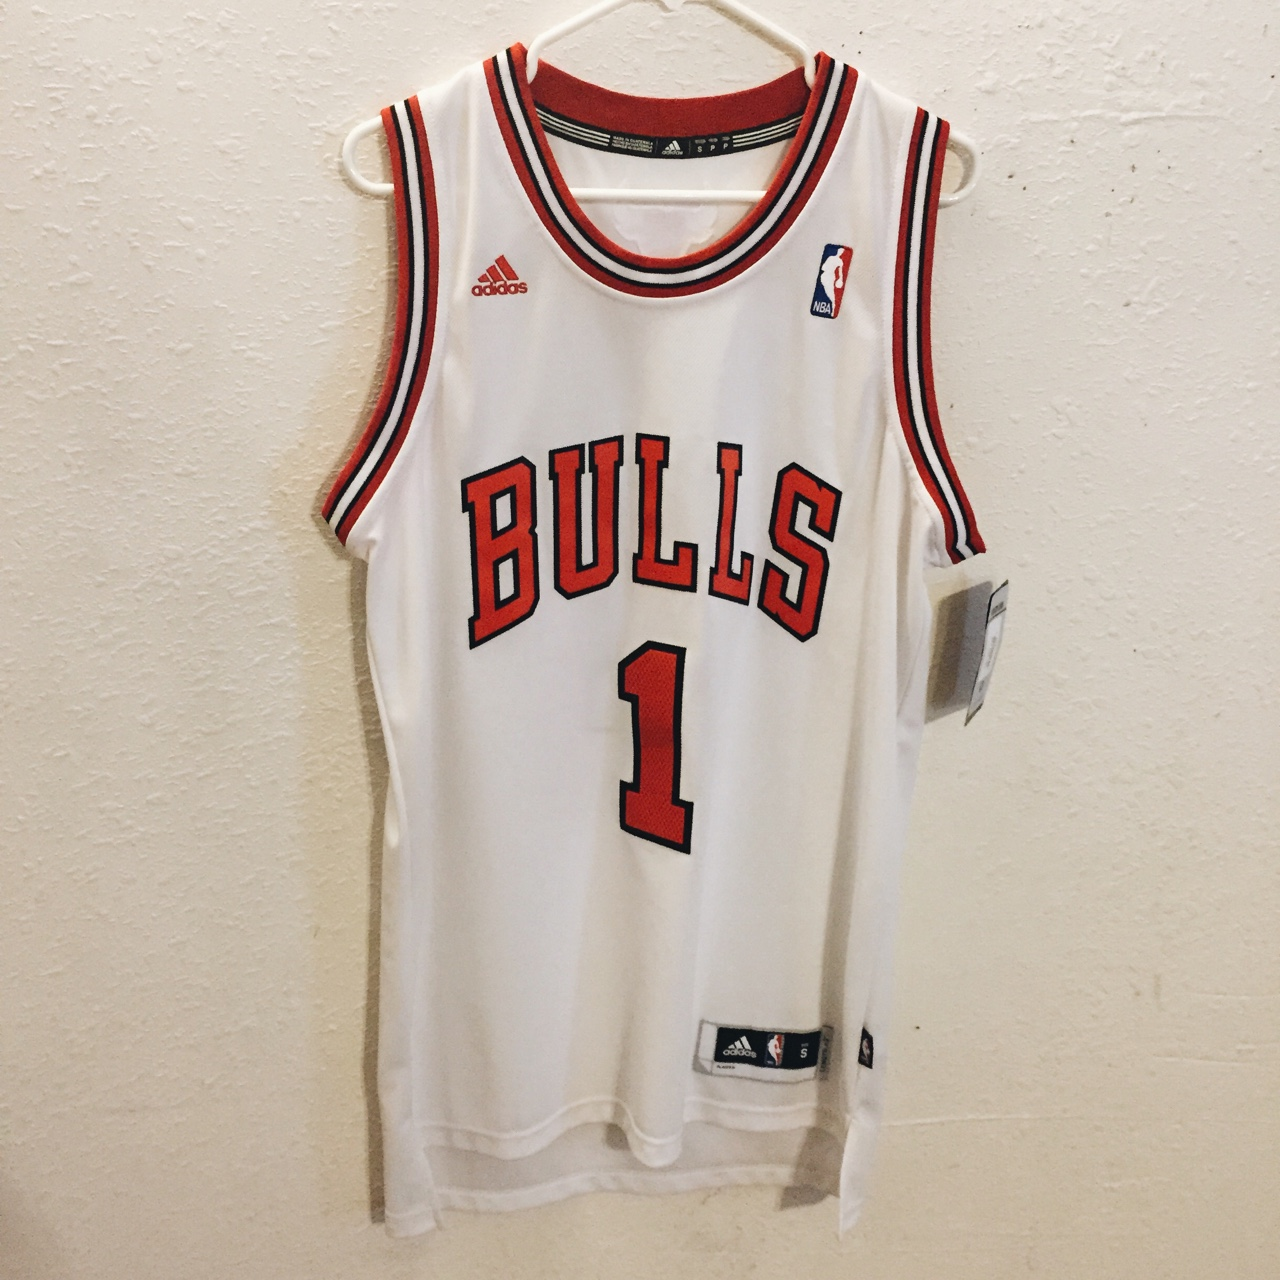 new arrival d3eaa 4fc1a Authentic swingman Derrick Rose Jersey, brand new... - Depop